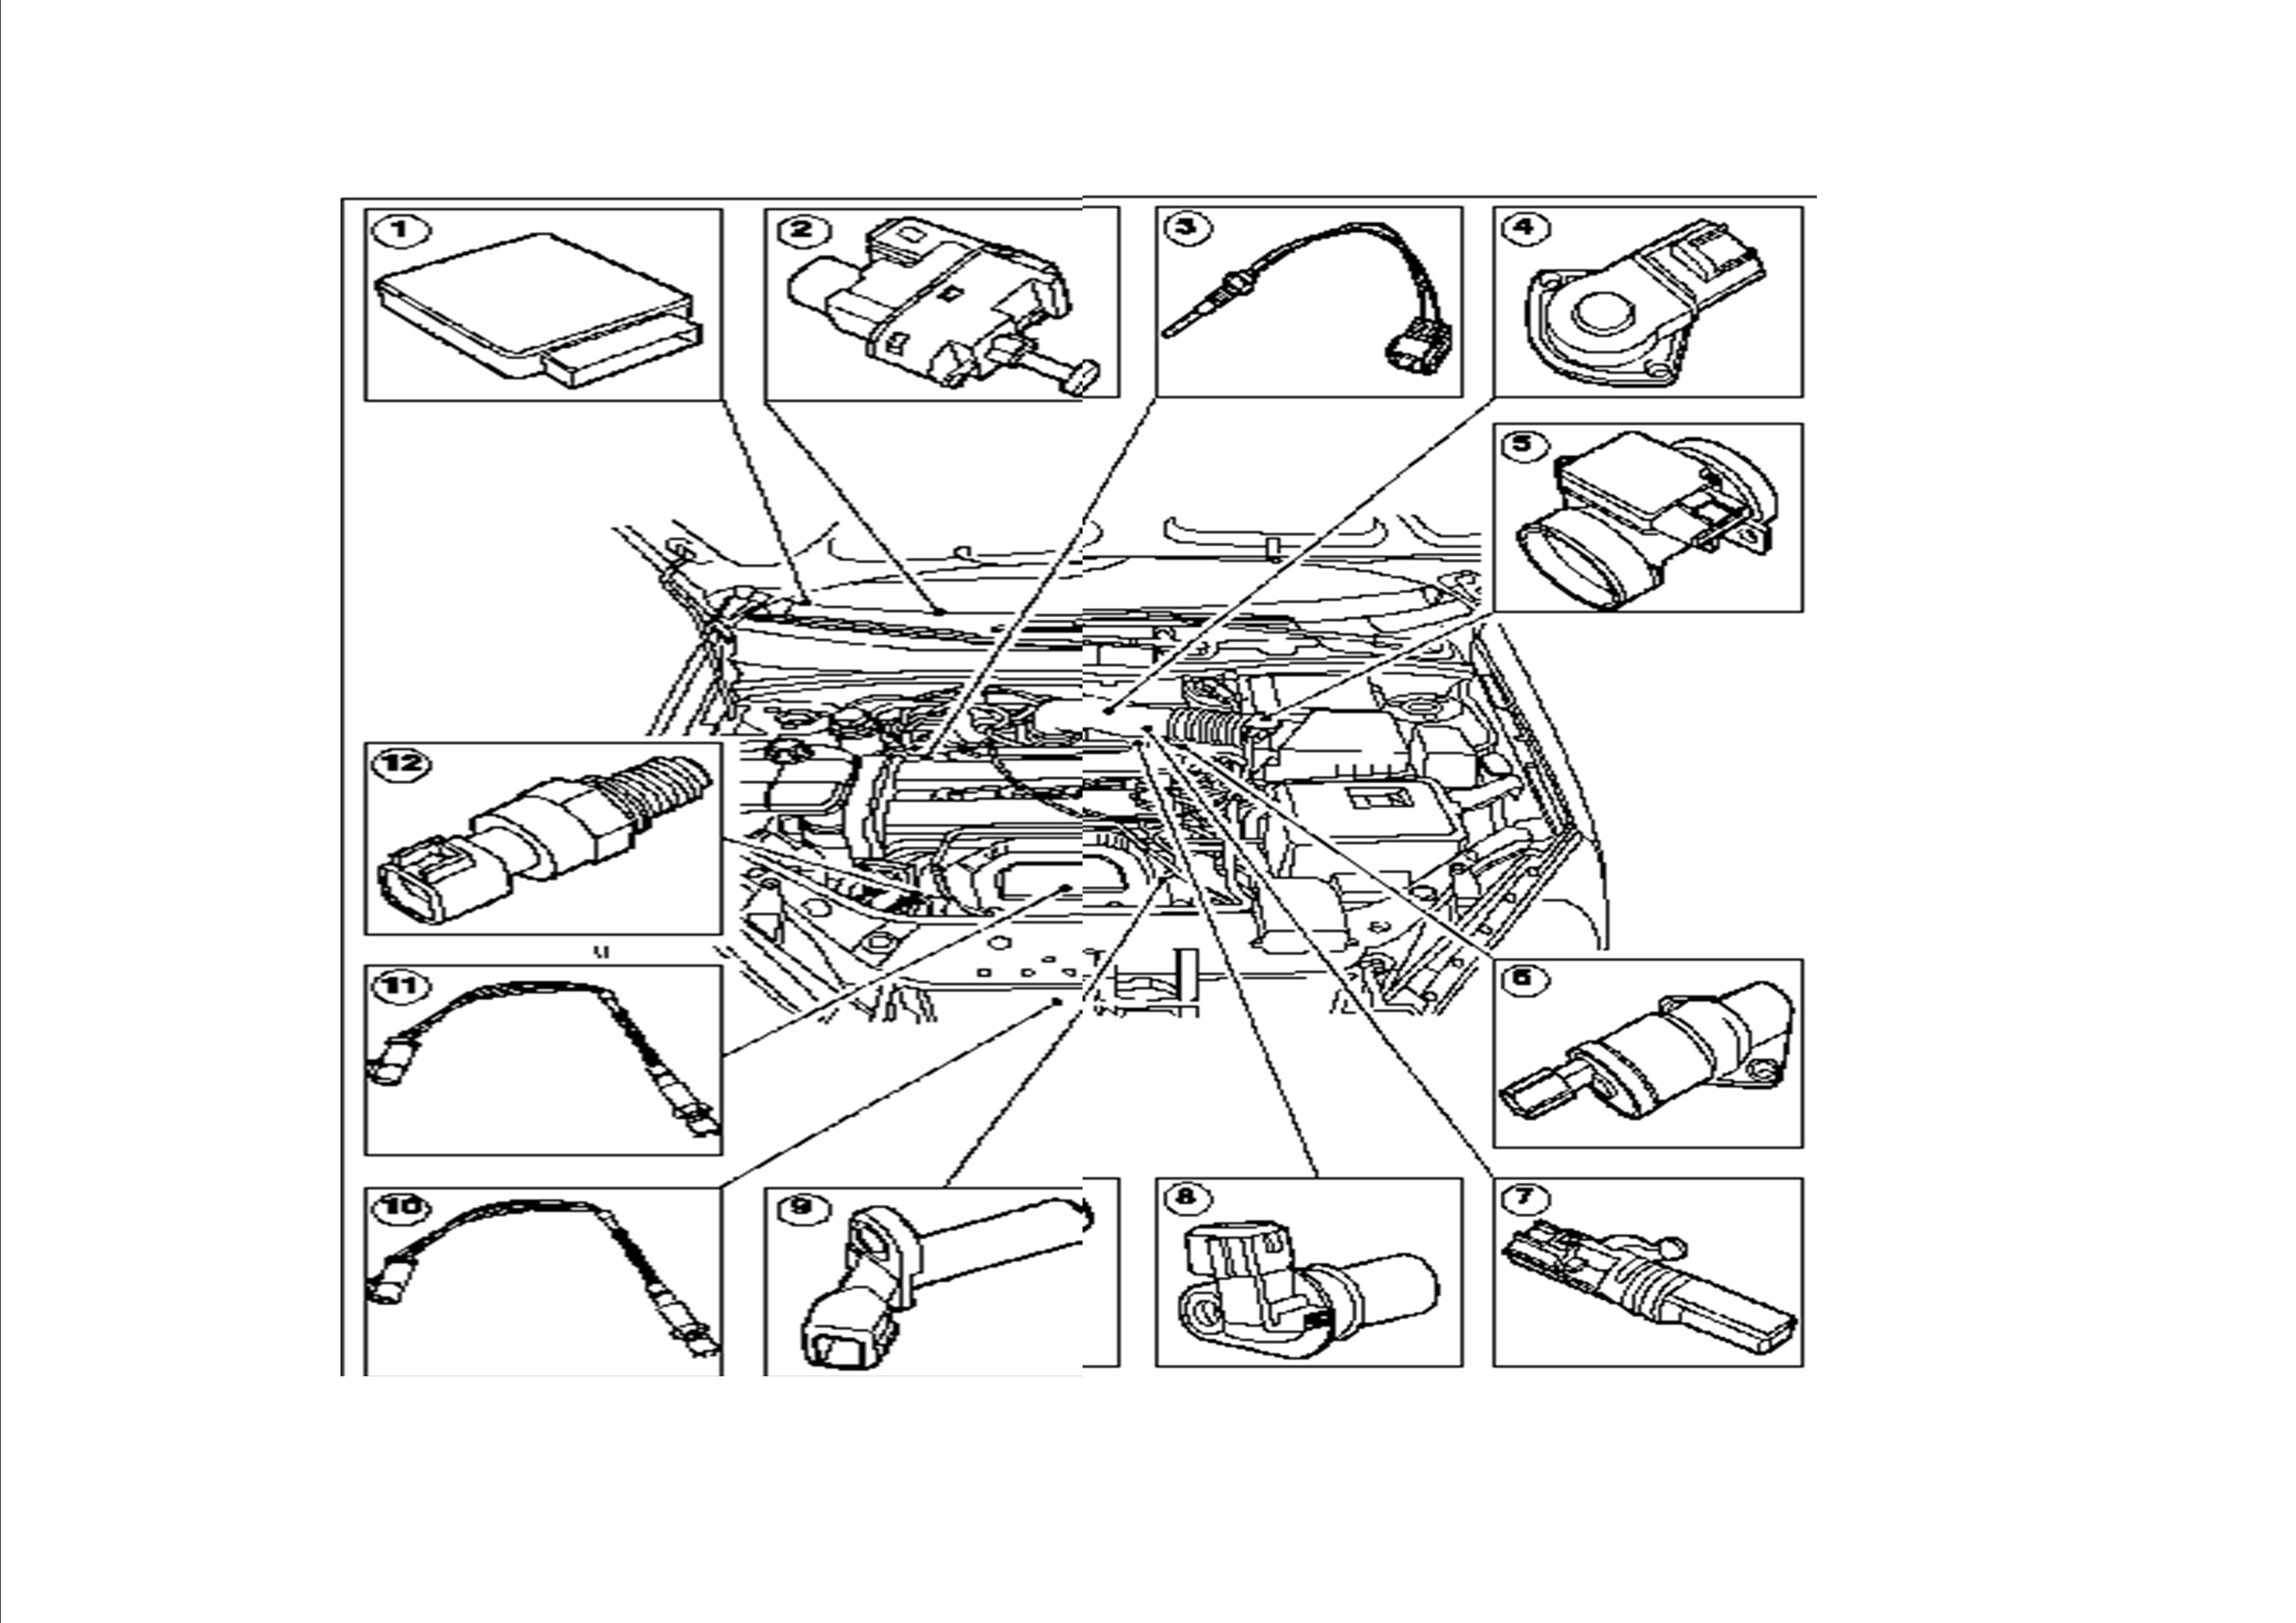 Mnl Ford Focus Zts Engine Diagram